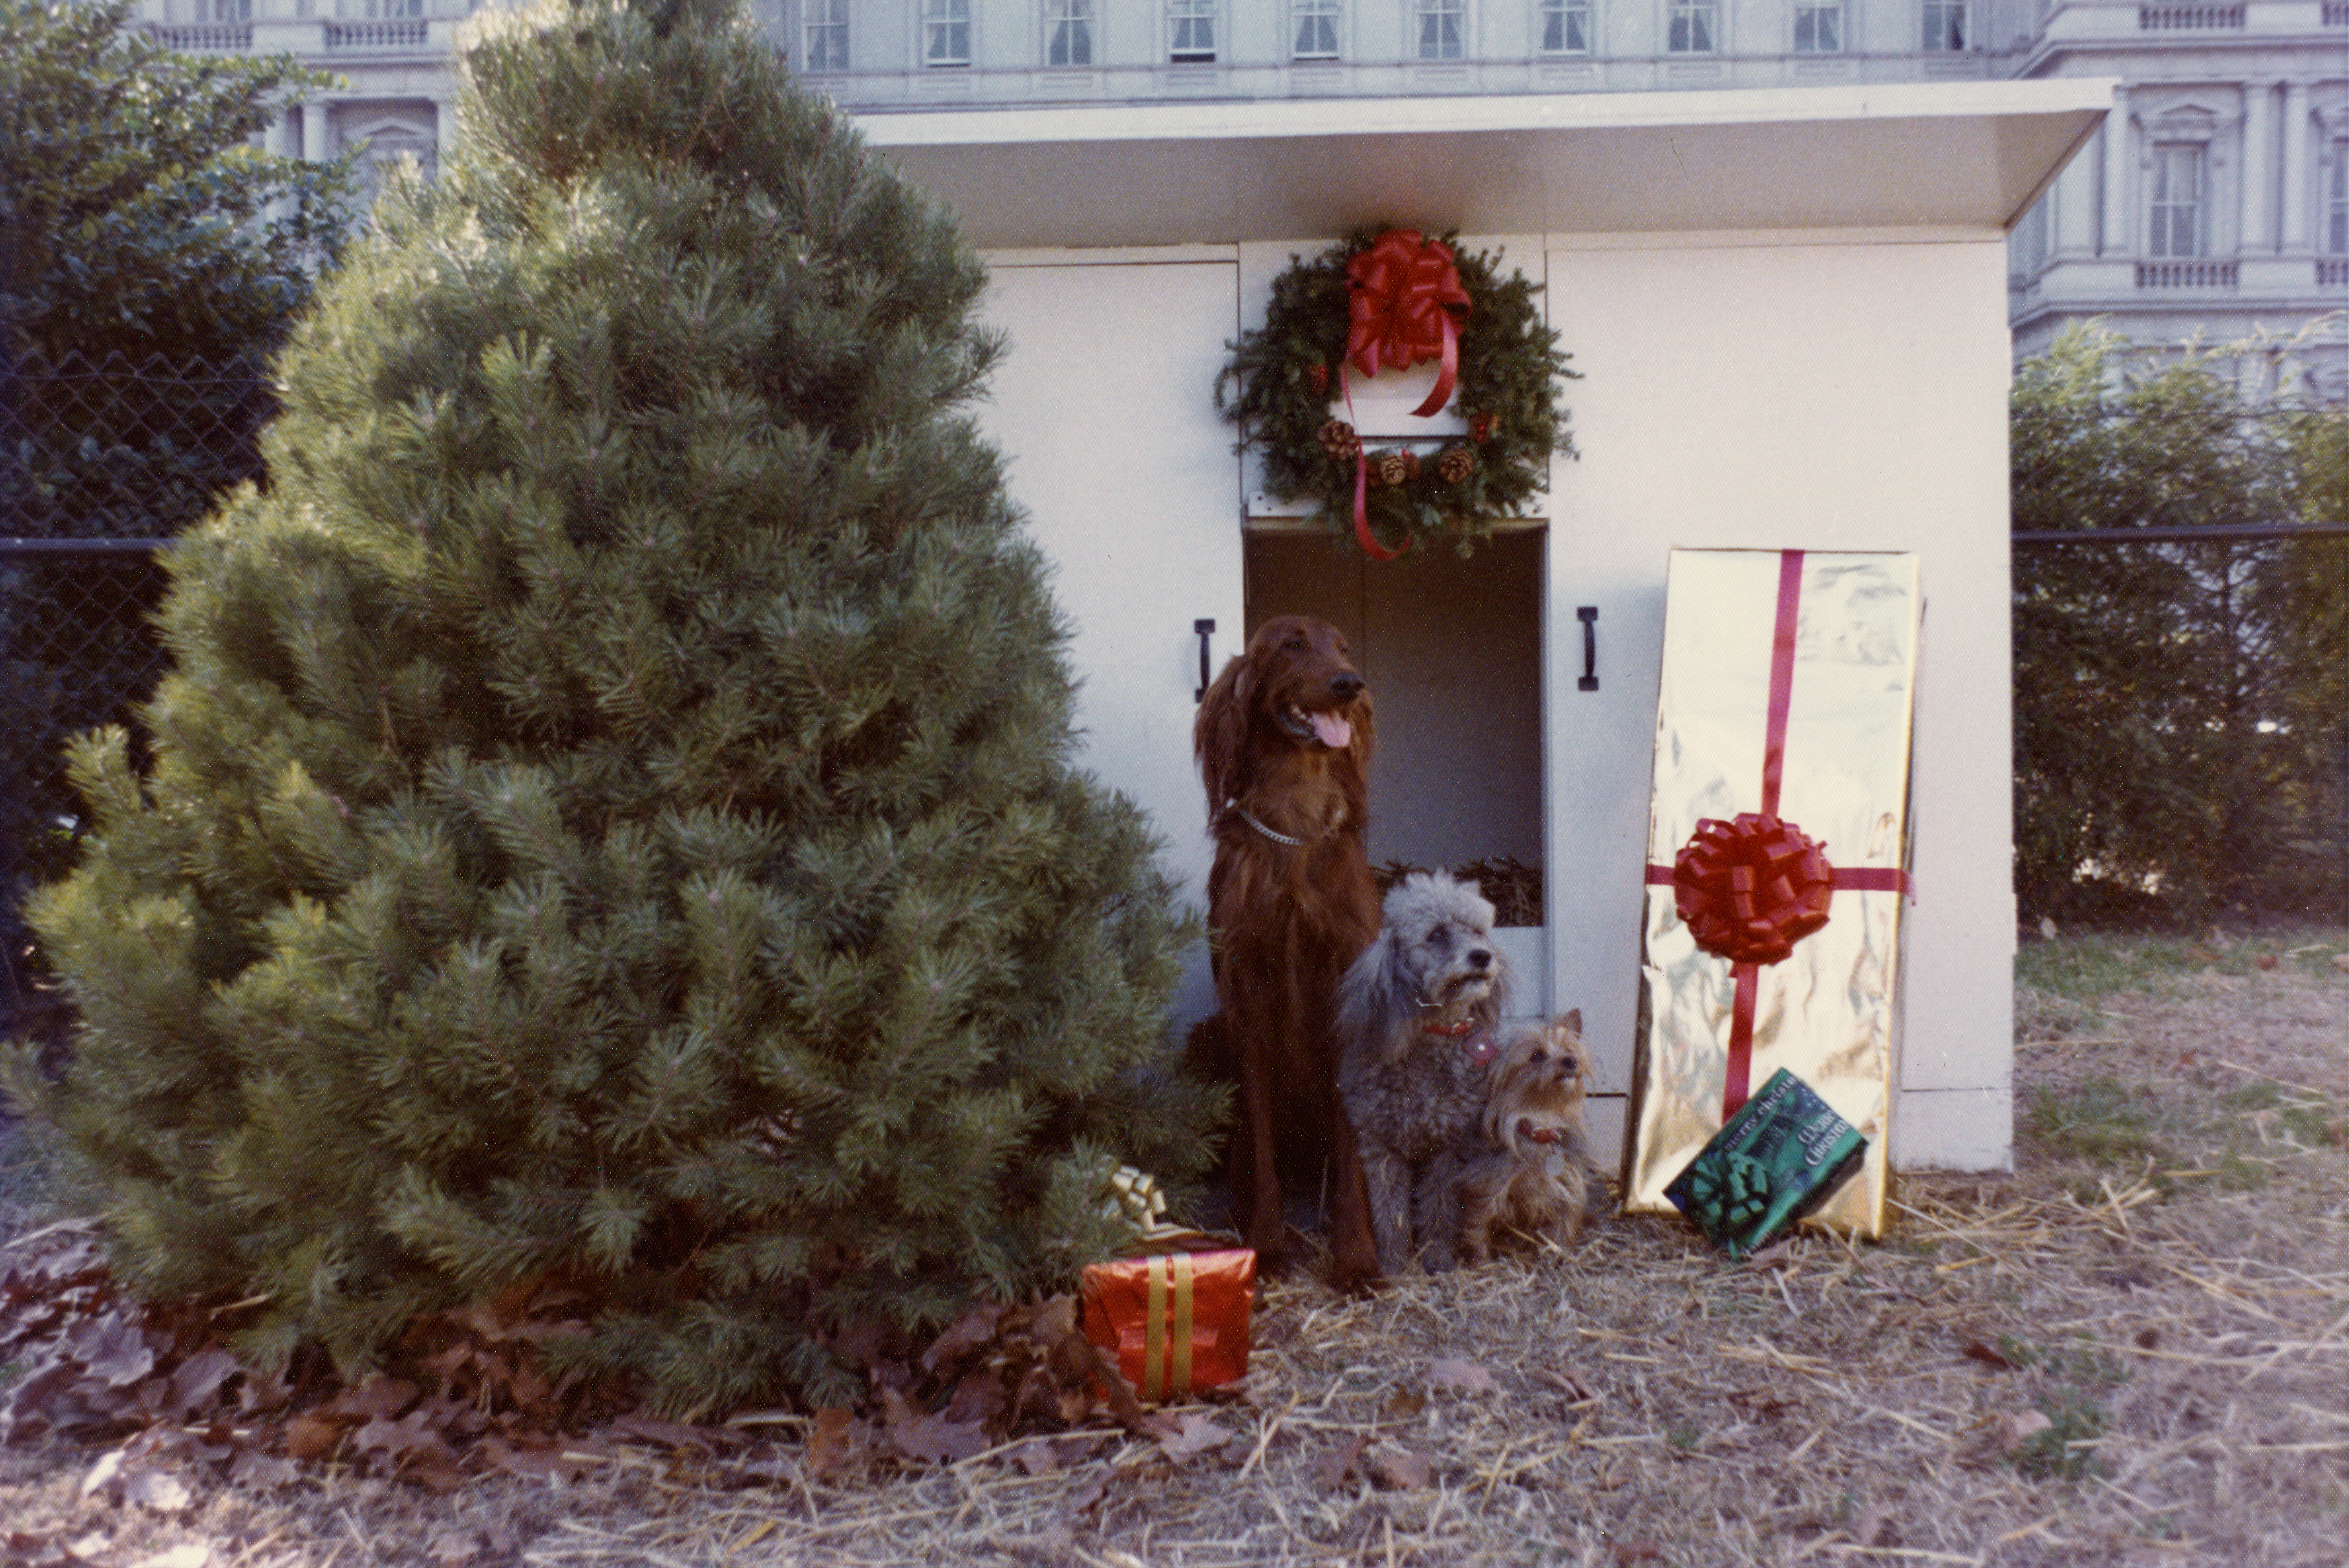 Nixon Family Dogs with Christmas Presents in Front of a Dog House